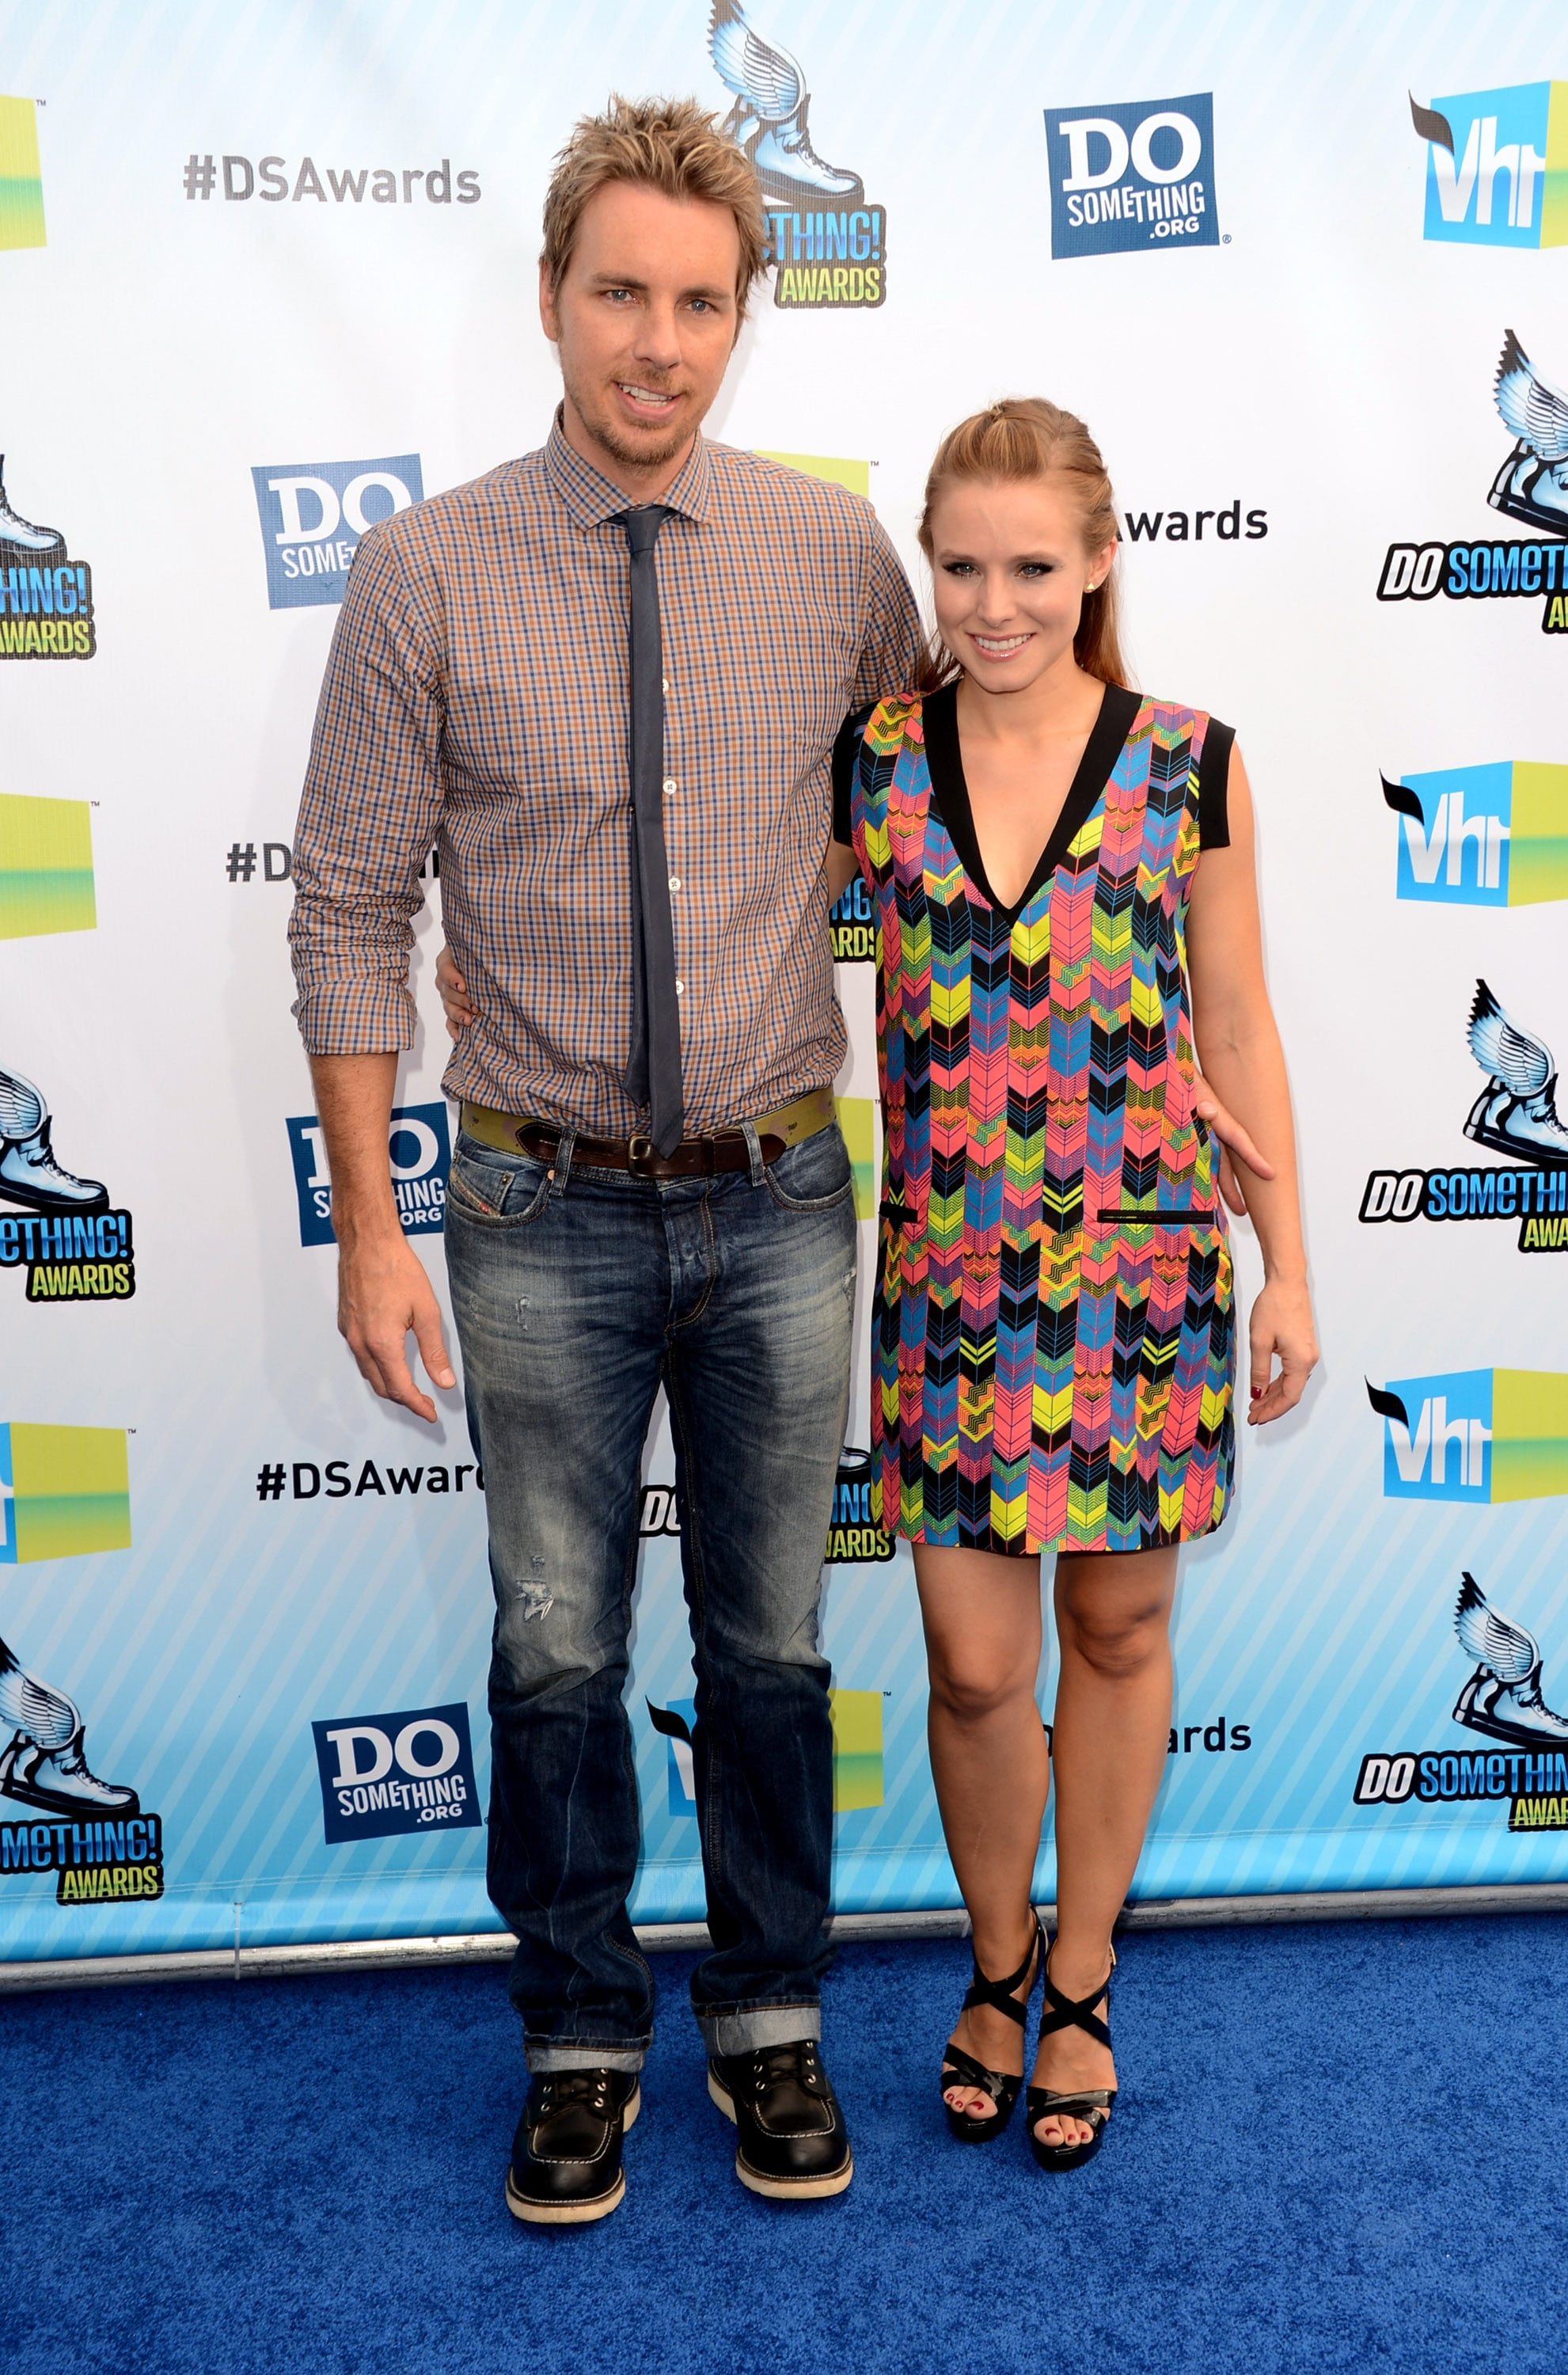 Dax Shepard and Kristen Bell posed together on the blue carpet.